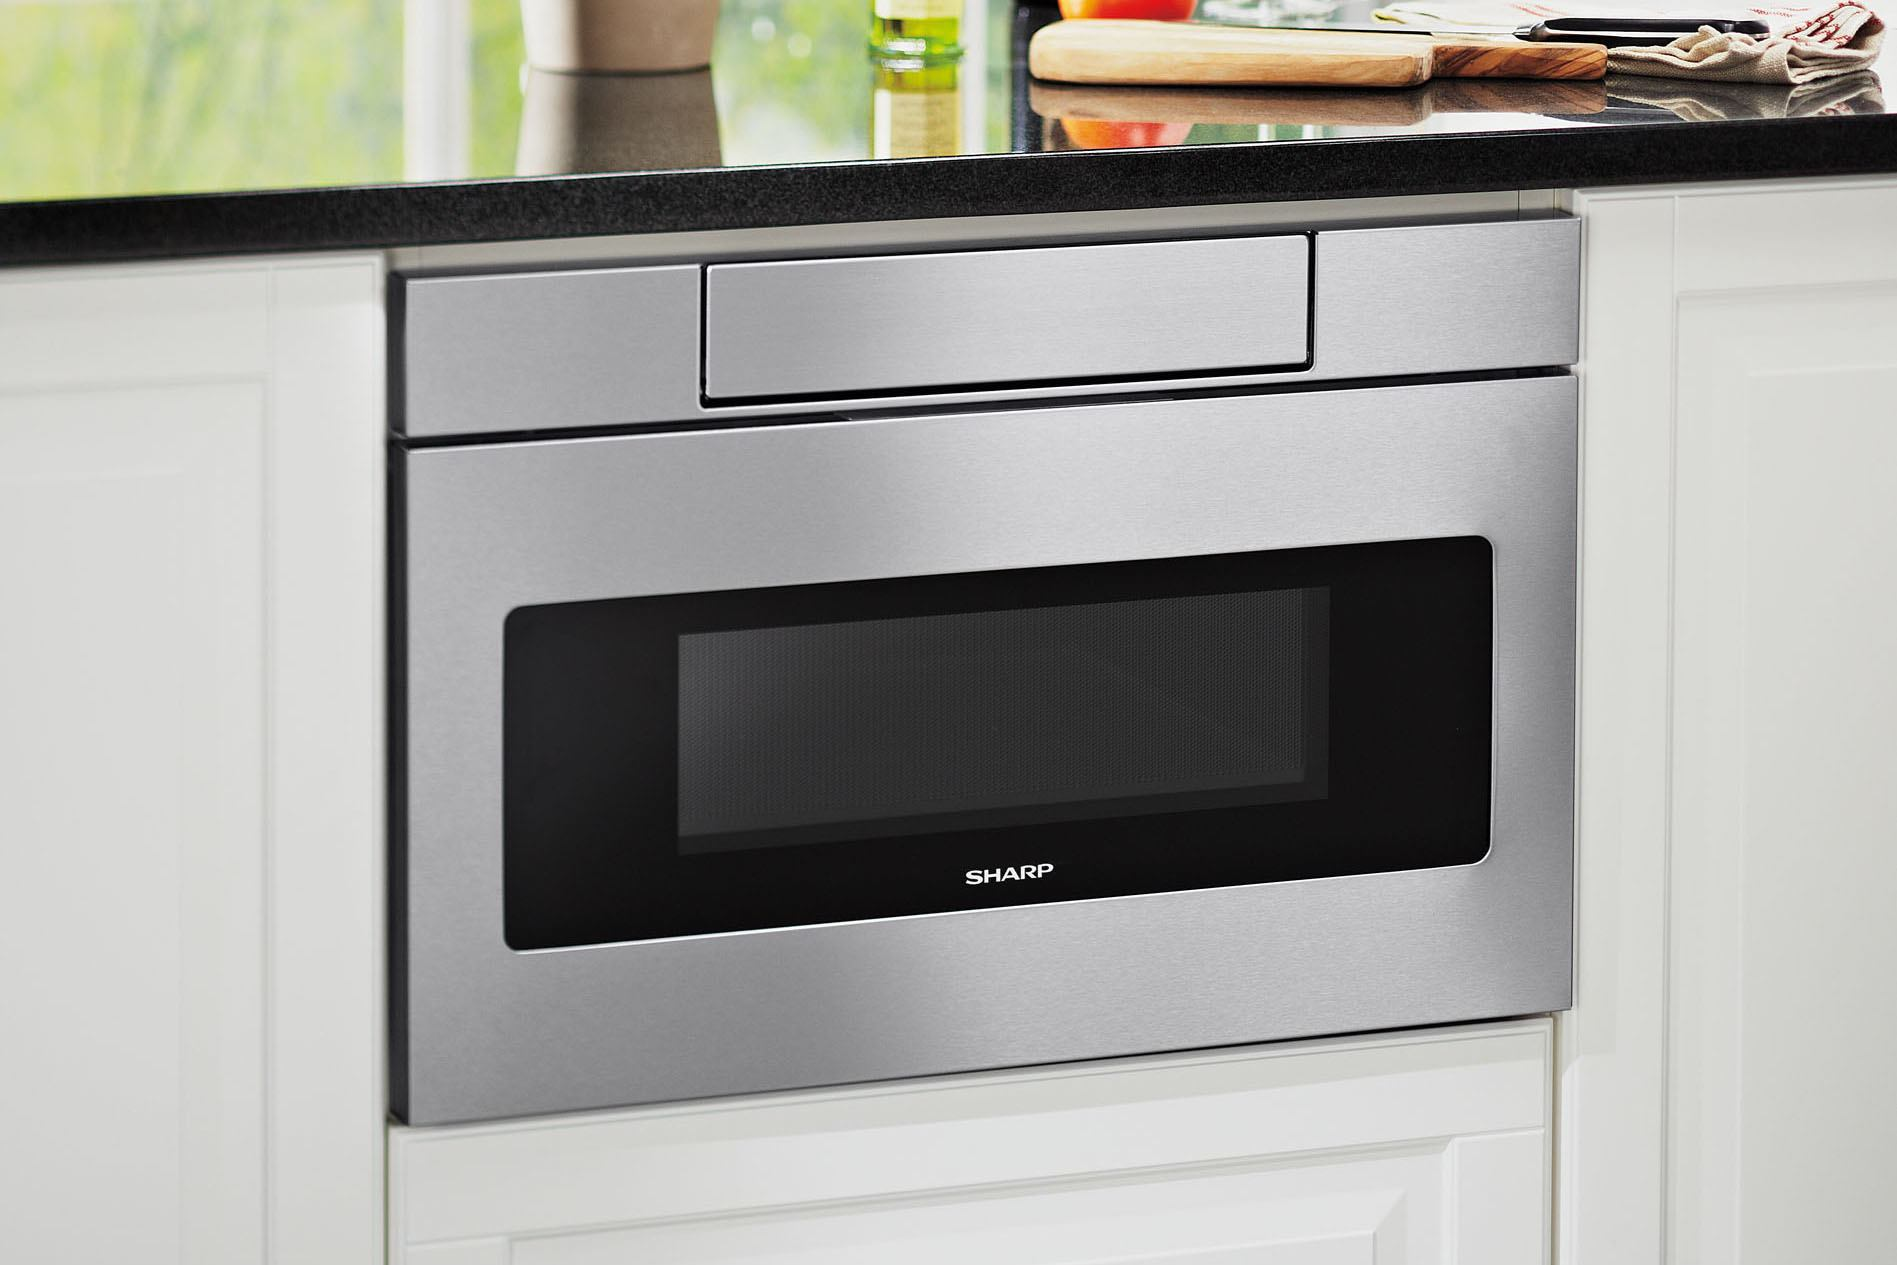 Sharp Updates Its Microwave Drawer For Universal Design Jlc Online